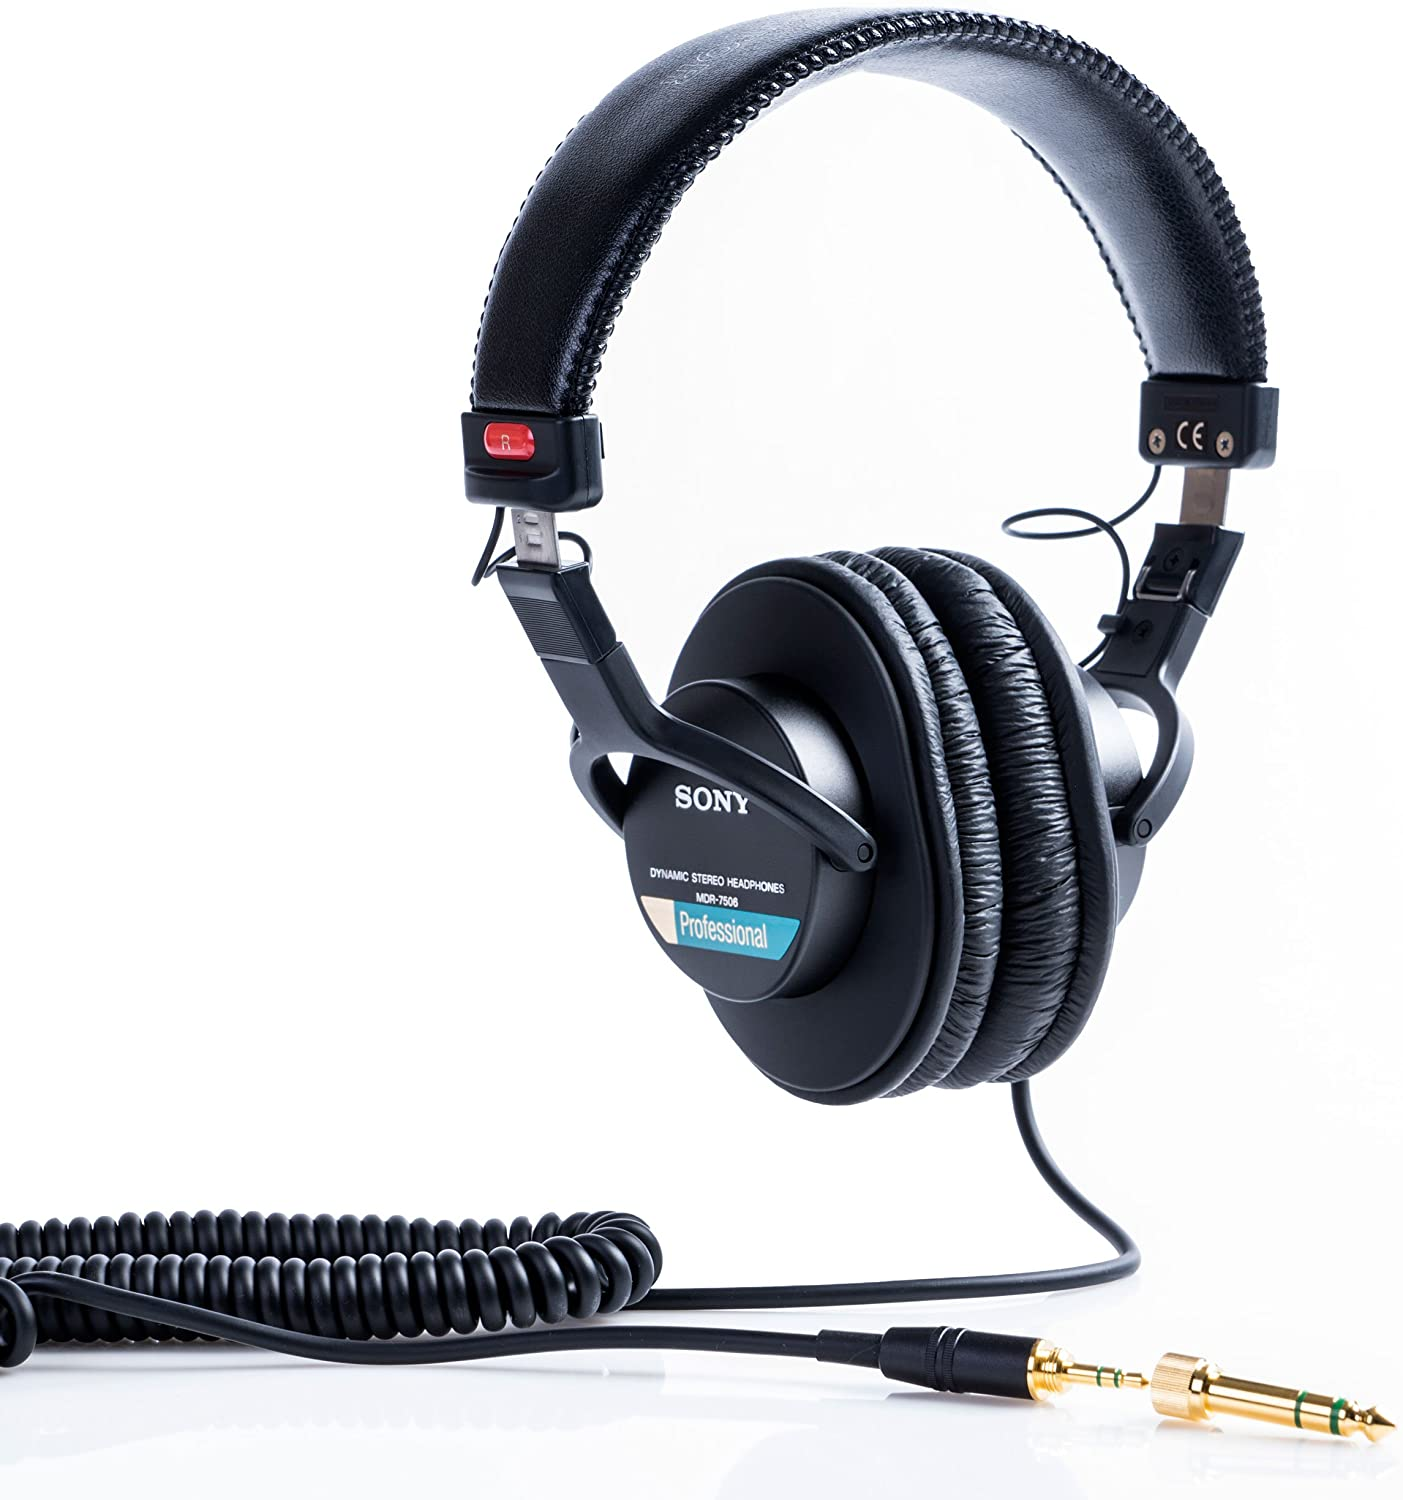 Sony MDR7506 - Best headphone for beat making